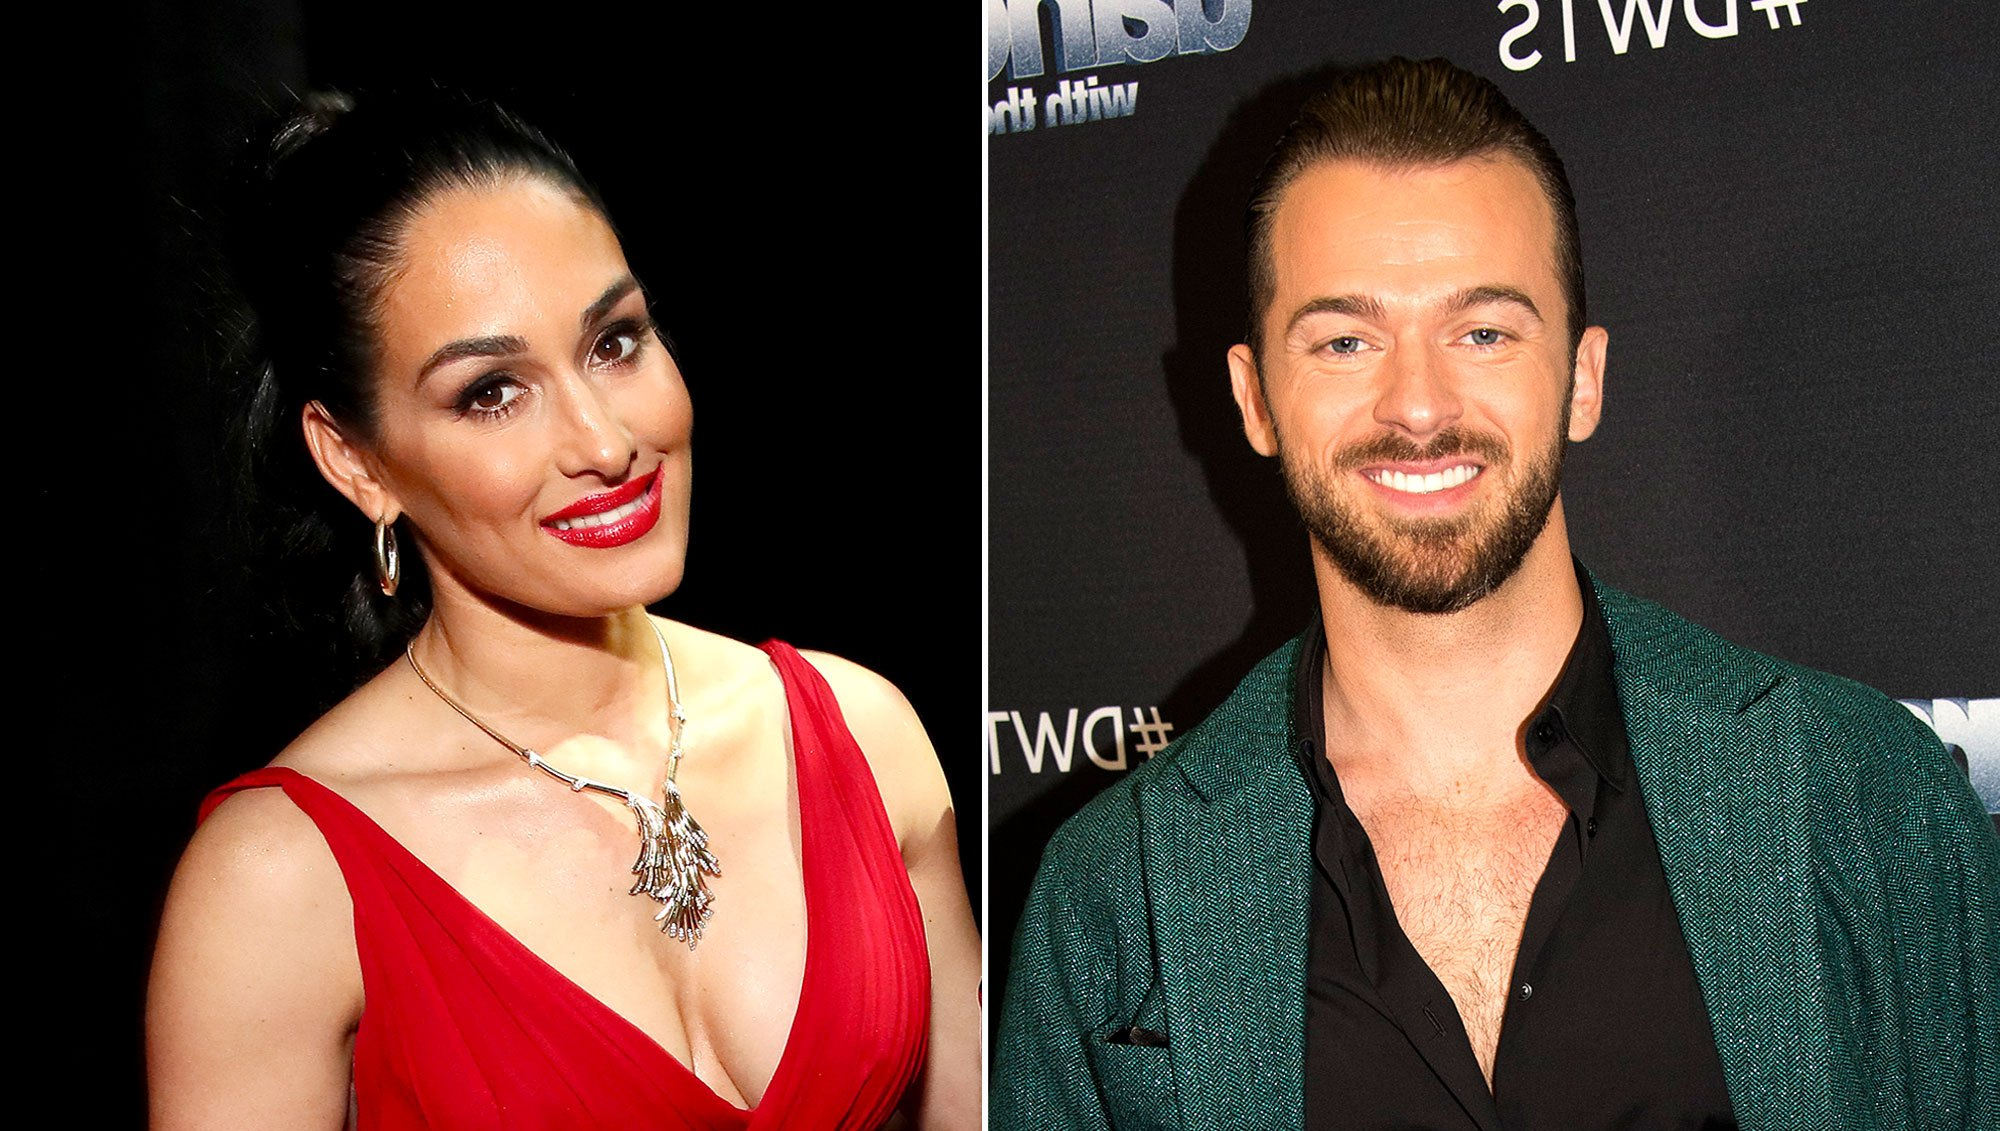 Nikki Bella and Artem Chigvintsev Are 'Just Friends' Despite Having 'So Much Chemistry'